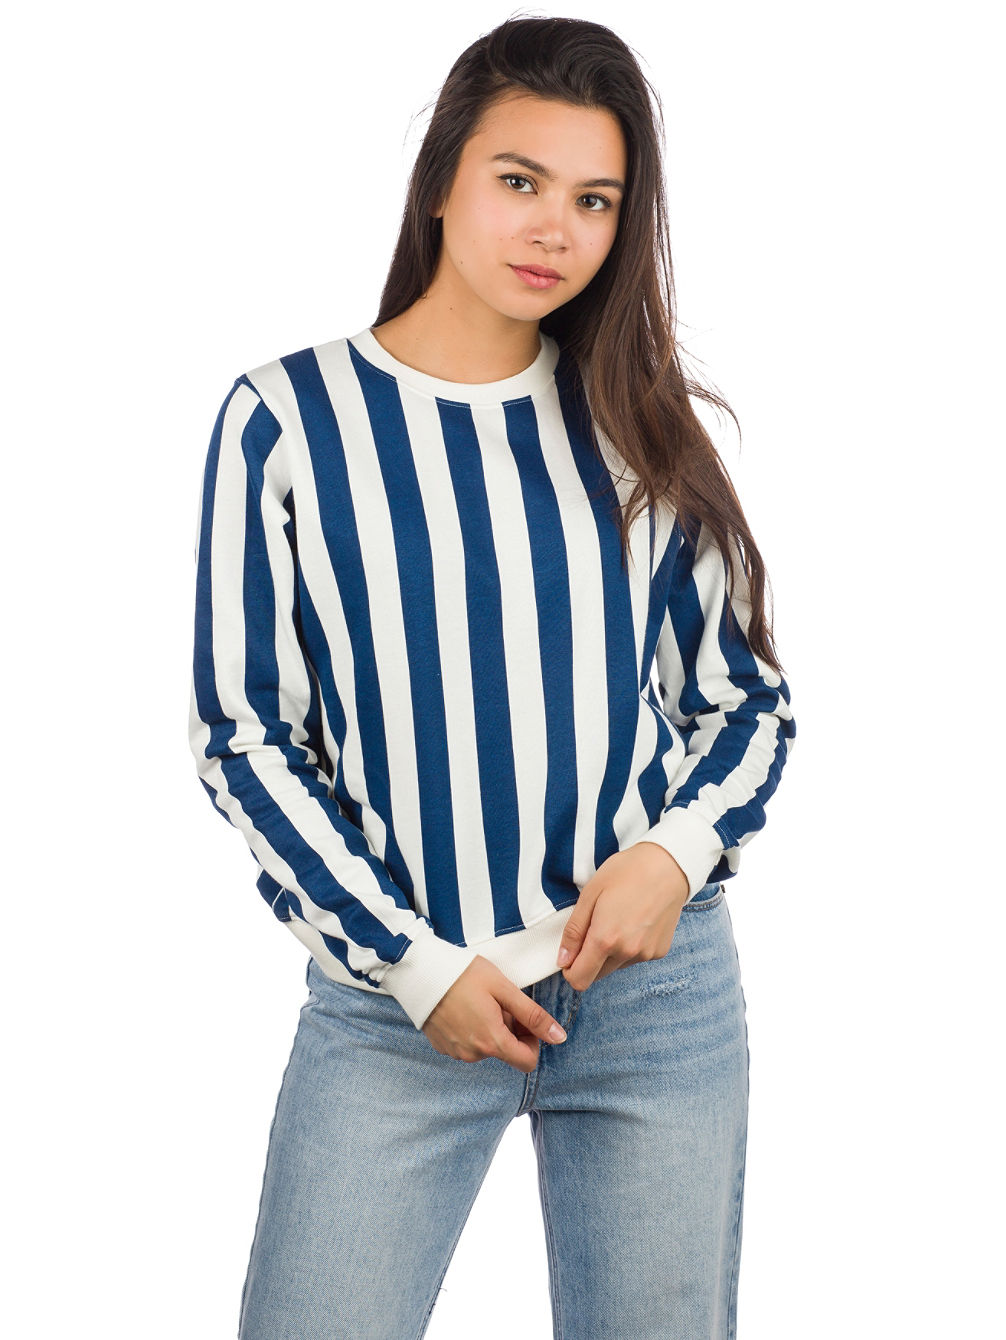 Ystad Big Stripes Sweater